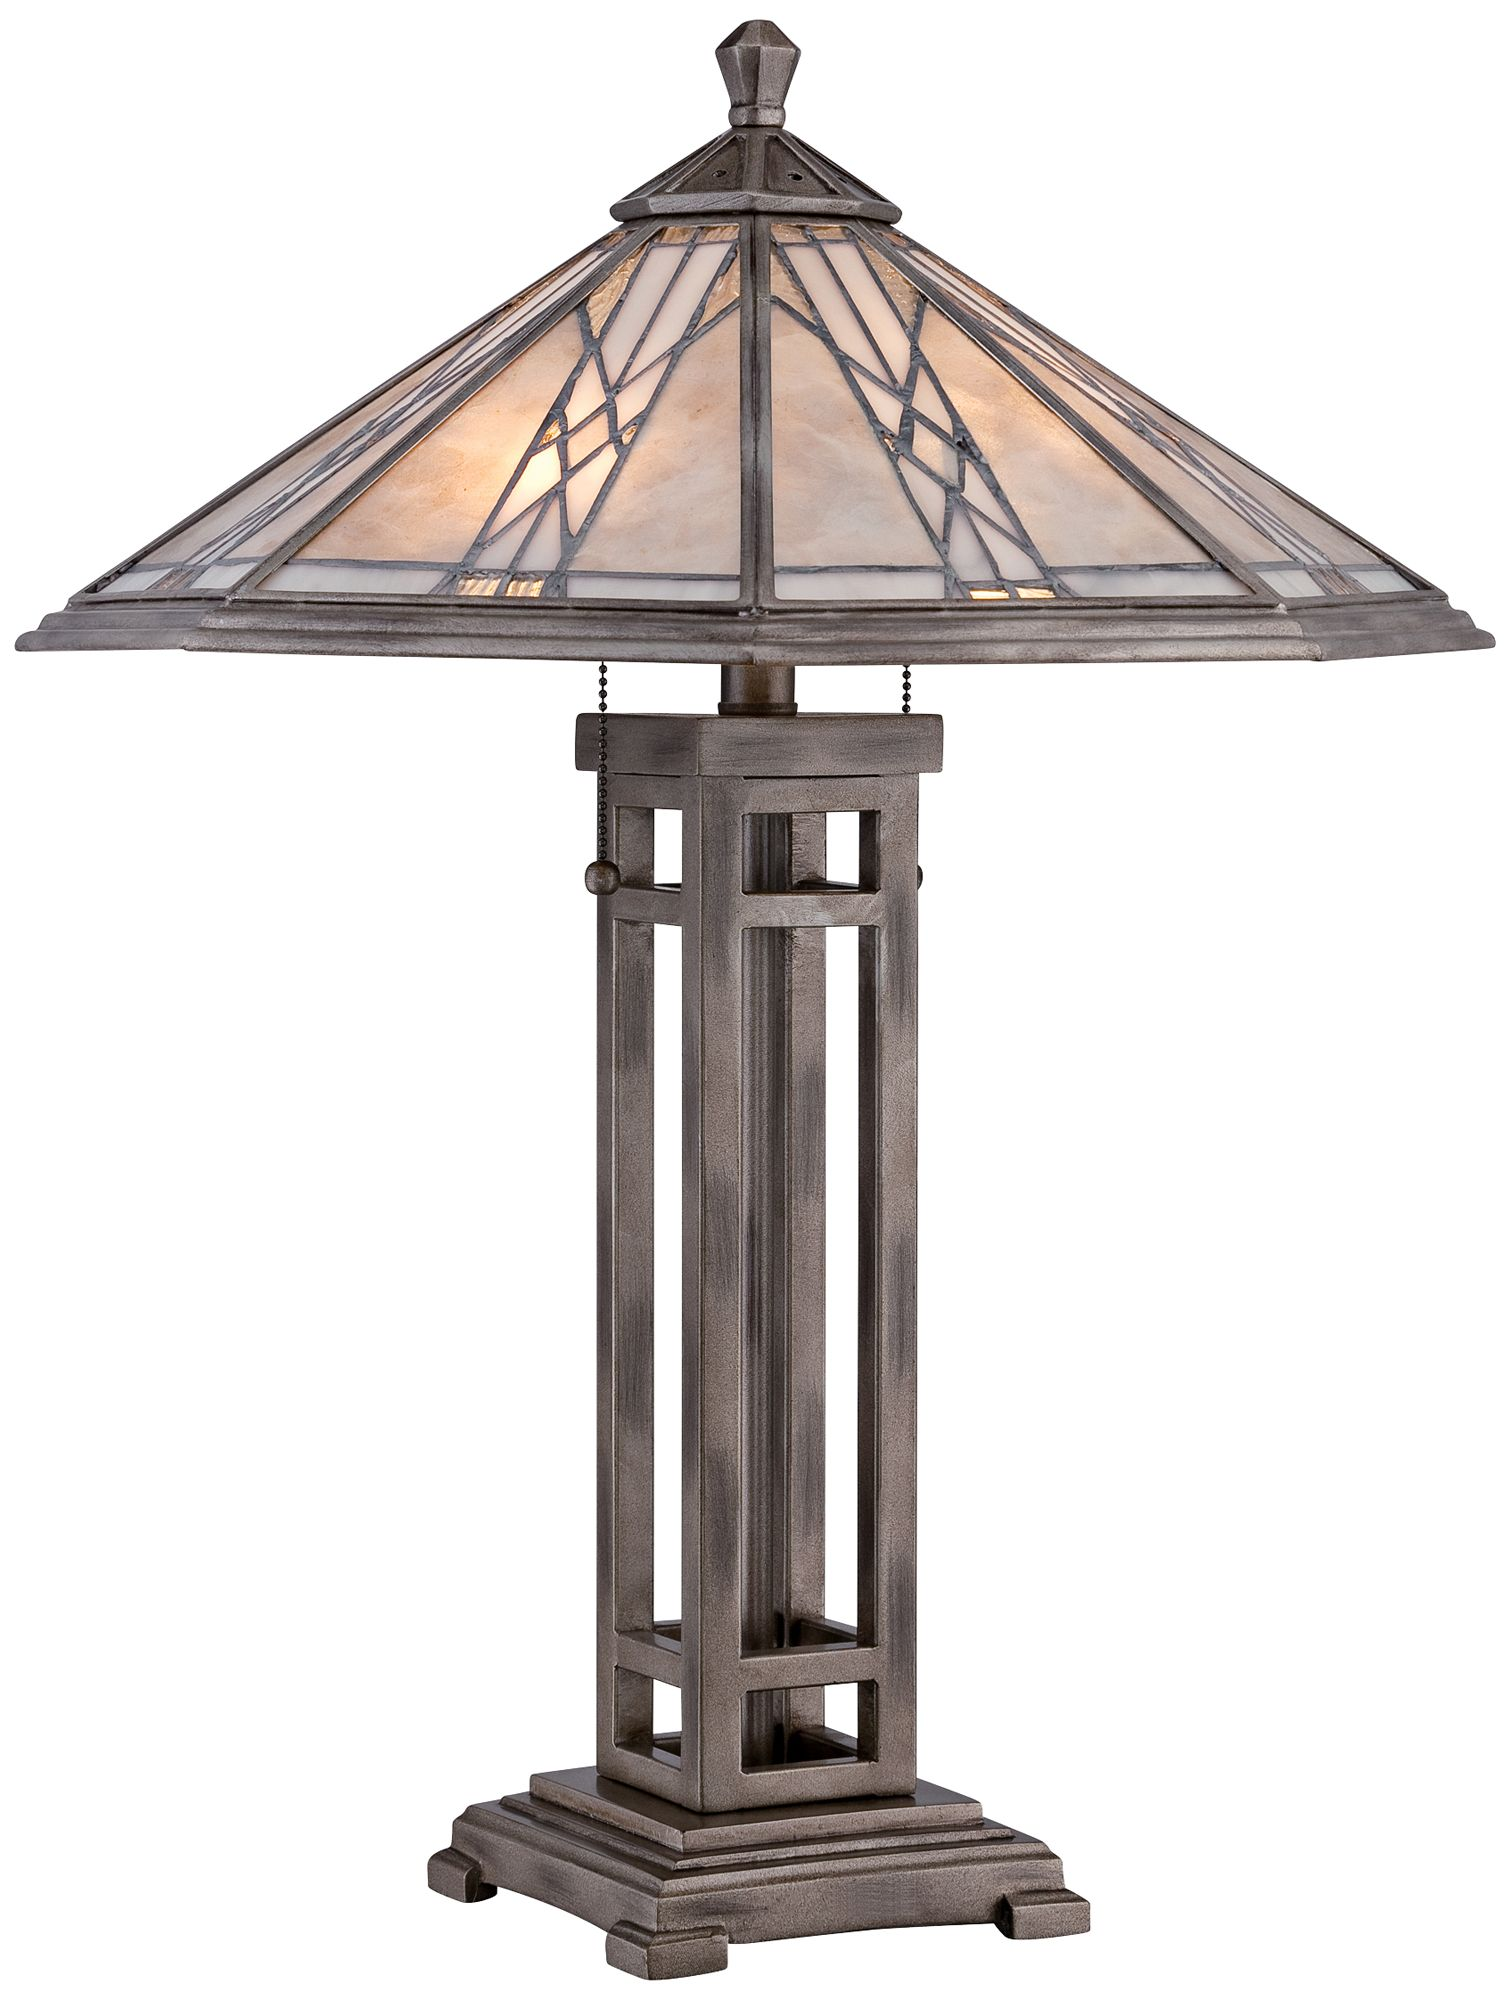 Quoizel Cyrus Anniversary Silver Mission Table Lamp